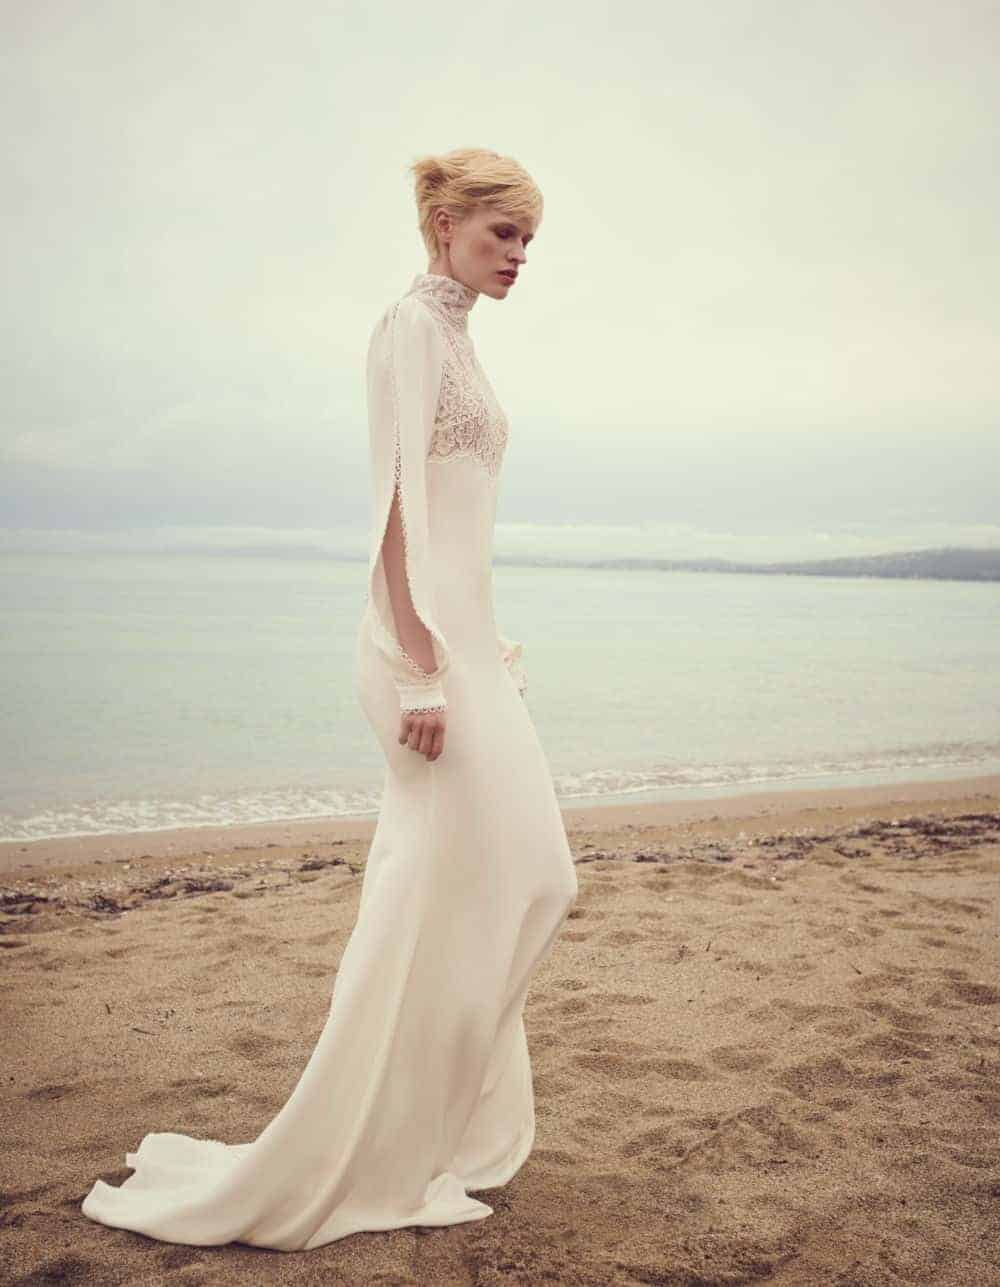 silk wedding dress with long sleeves by Costarellos